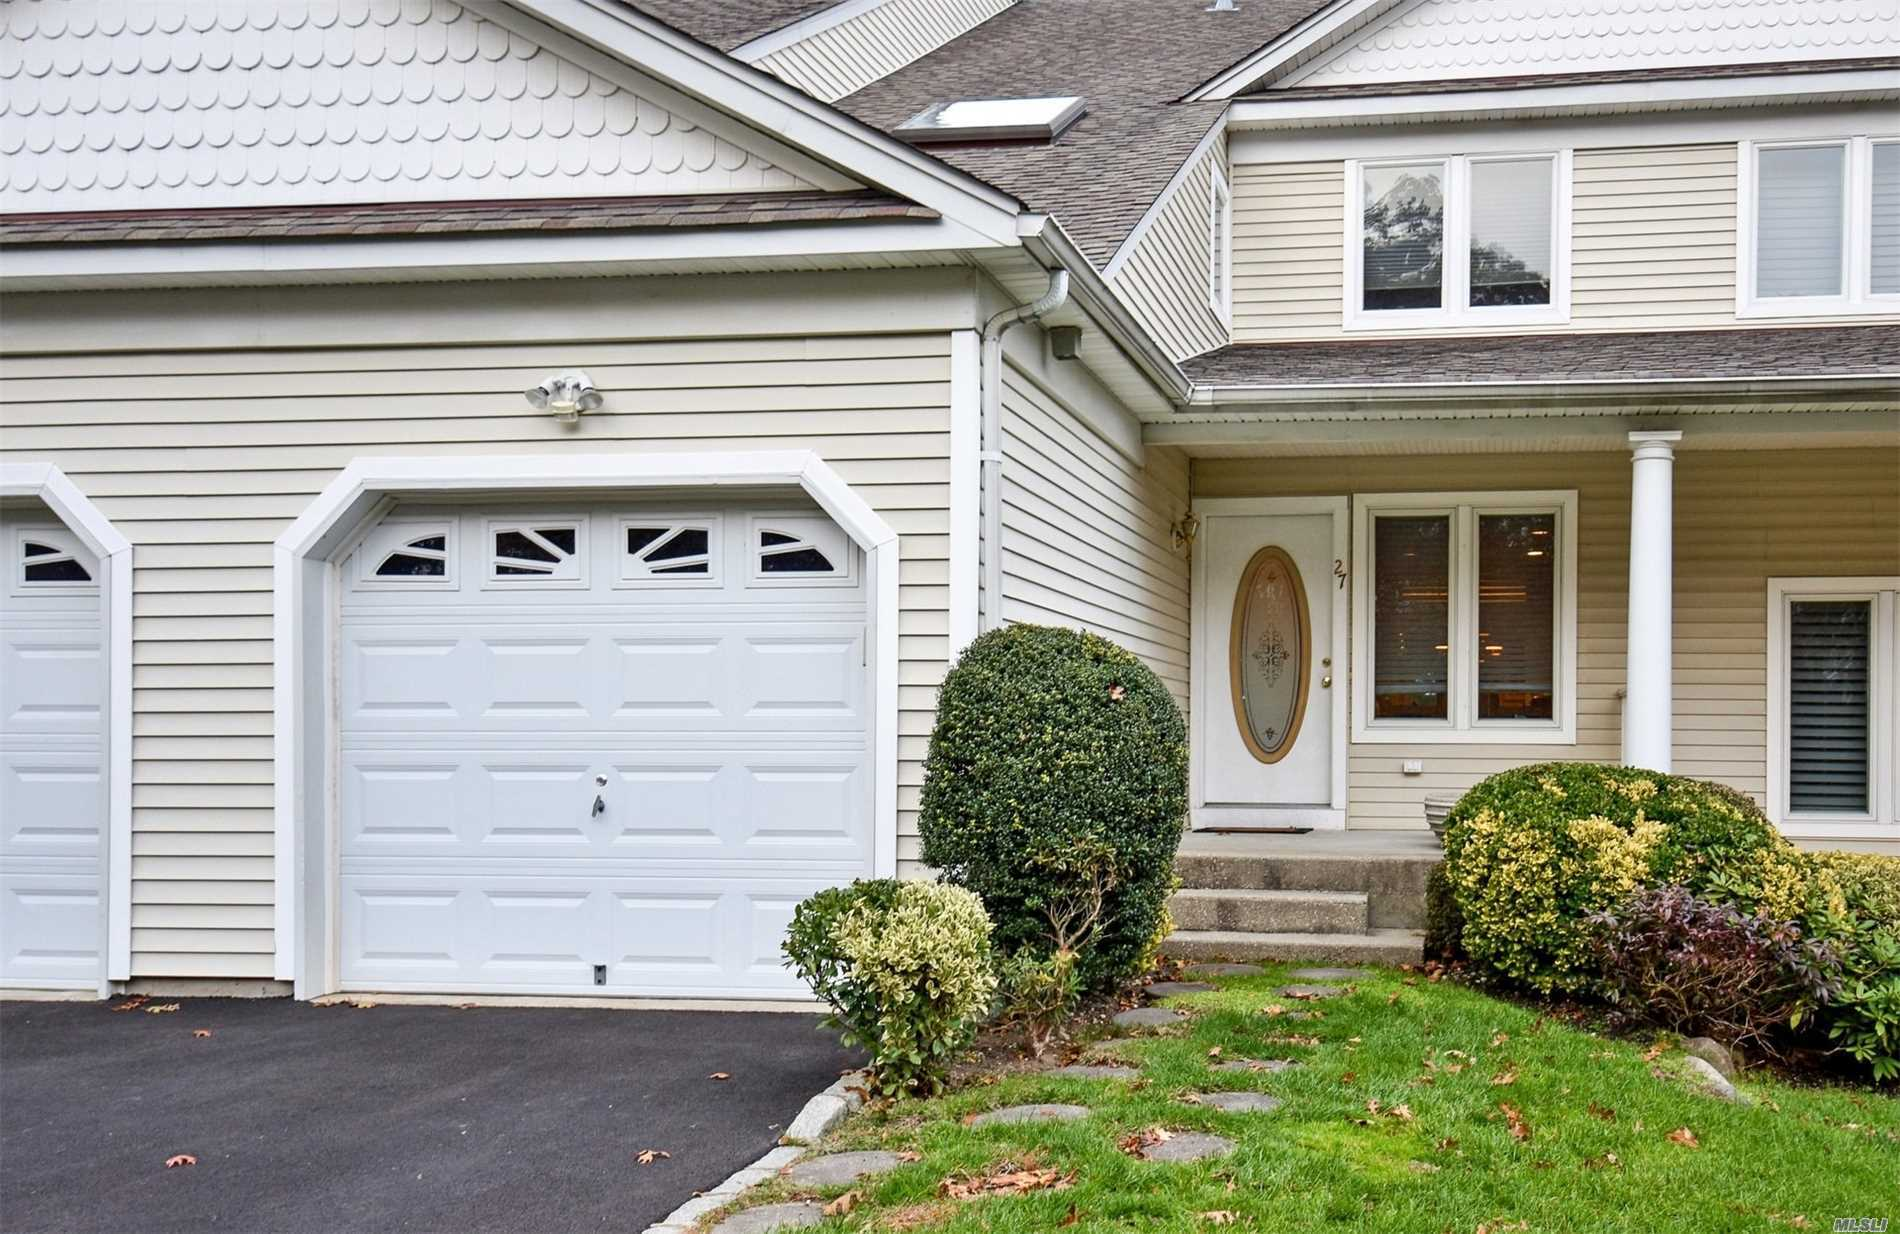 Garage For Sale Long Island 27 Lindbergh Cir Huntington Ny Mls 3080736 Long Island